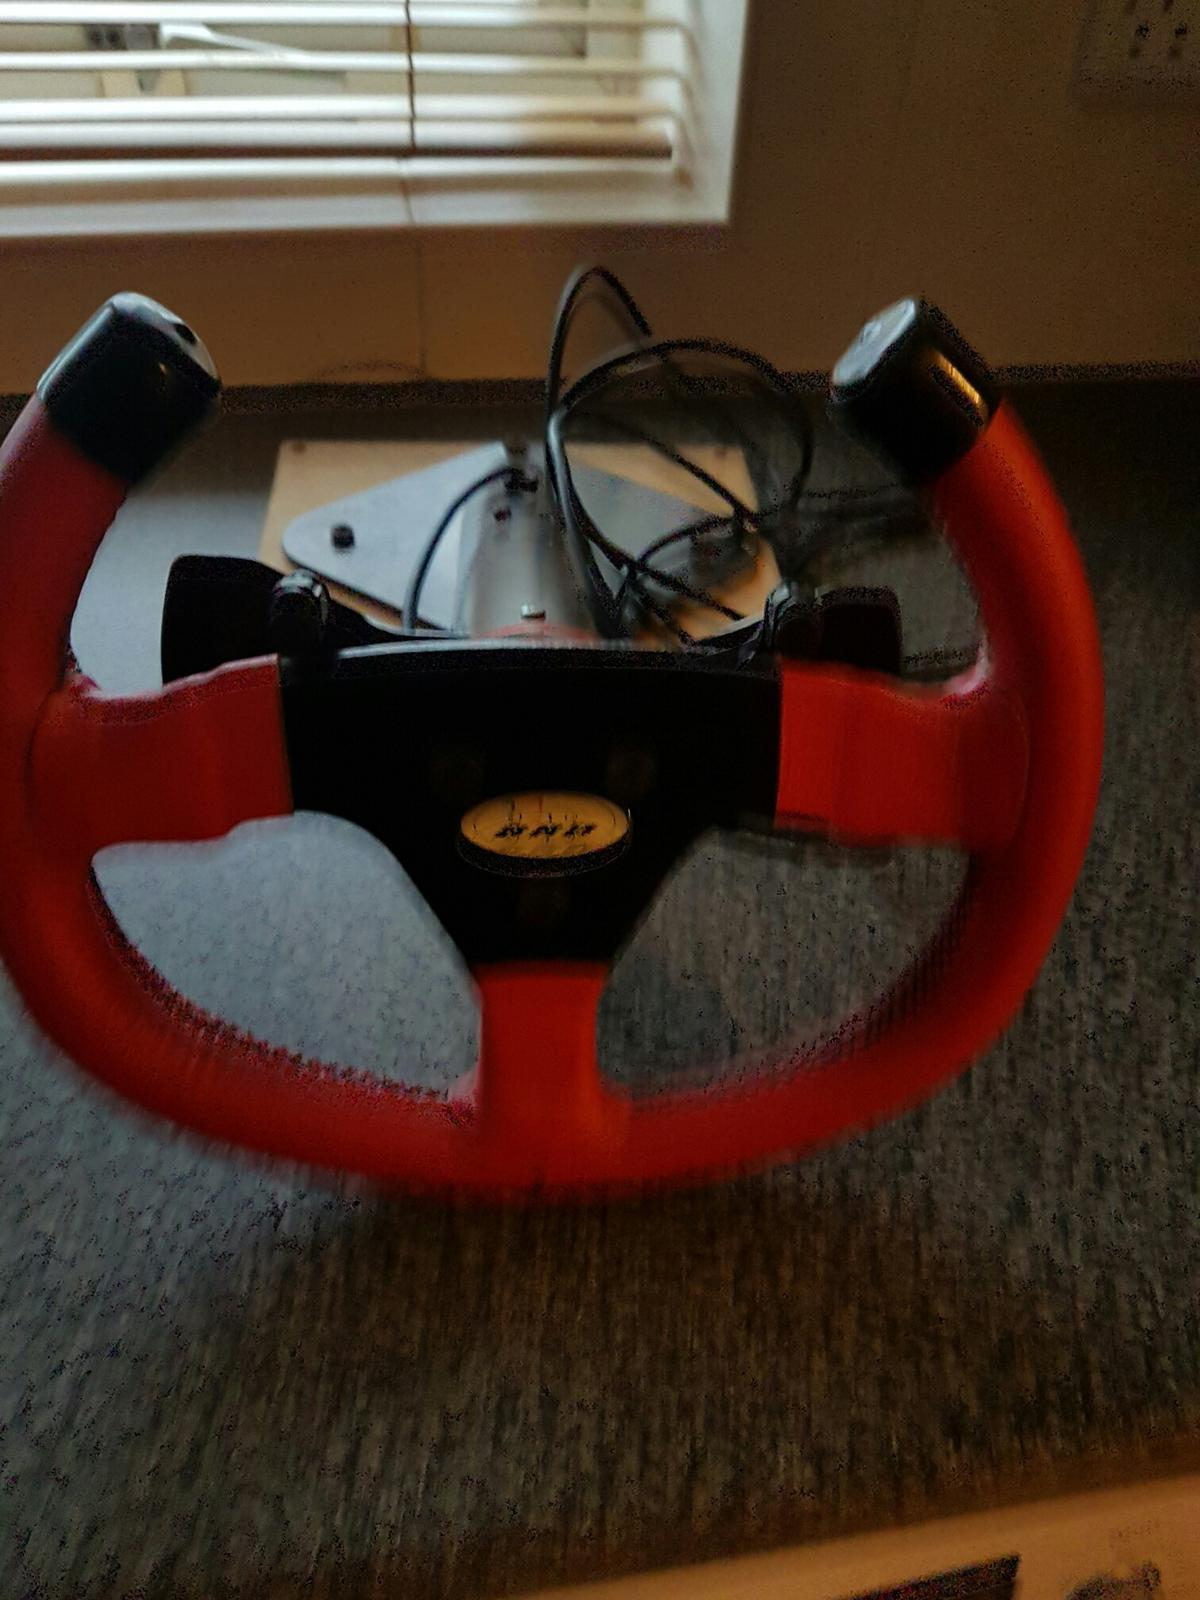 BRD Sim Pro V2 wheel and SPEED 7 pedals in SG1 Stevenage for